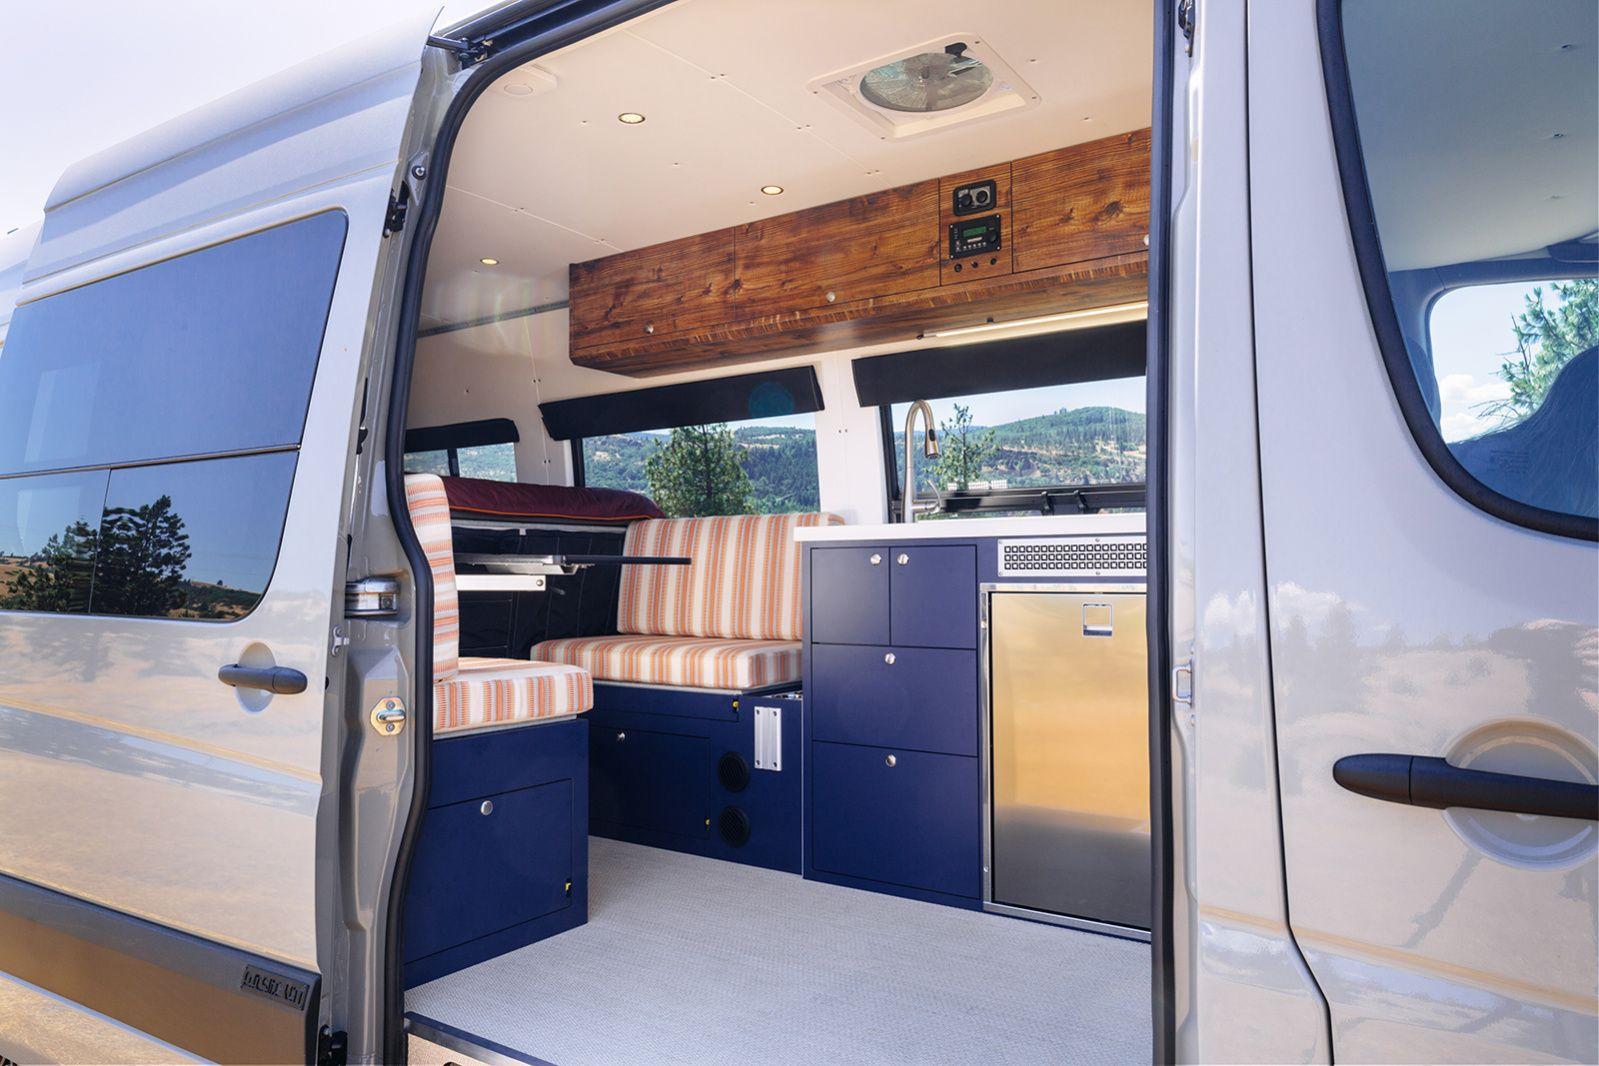 This Company Turns Vans Into Tricked-Out Homes on Wheels